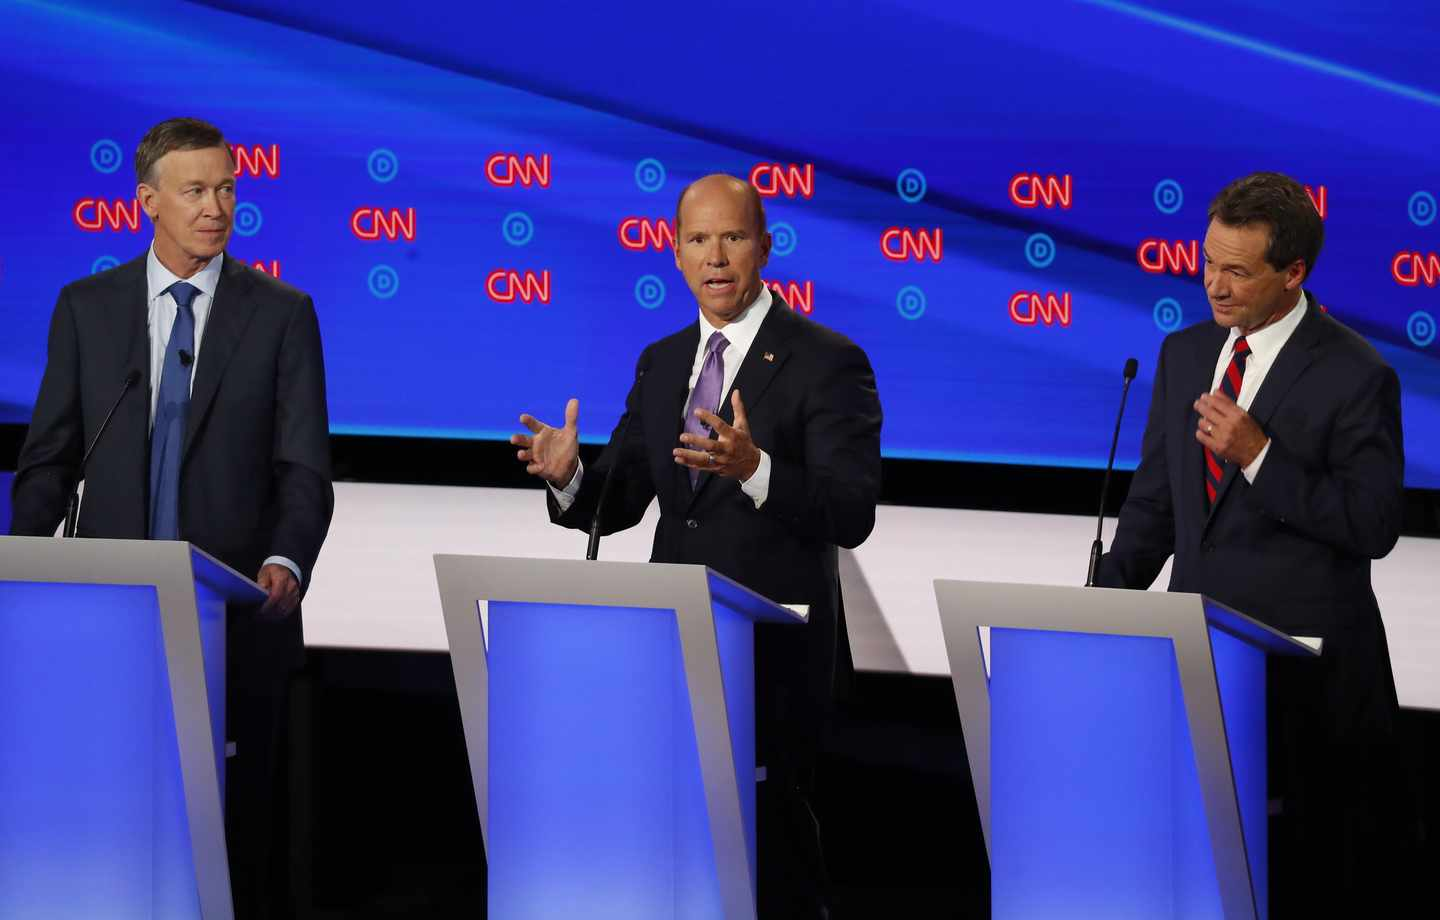 Debate Field Reflects Democrats' Disdain for Business Success